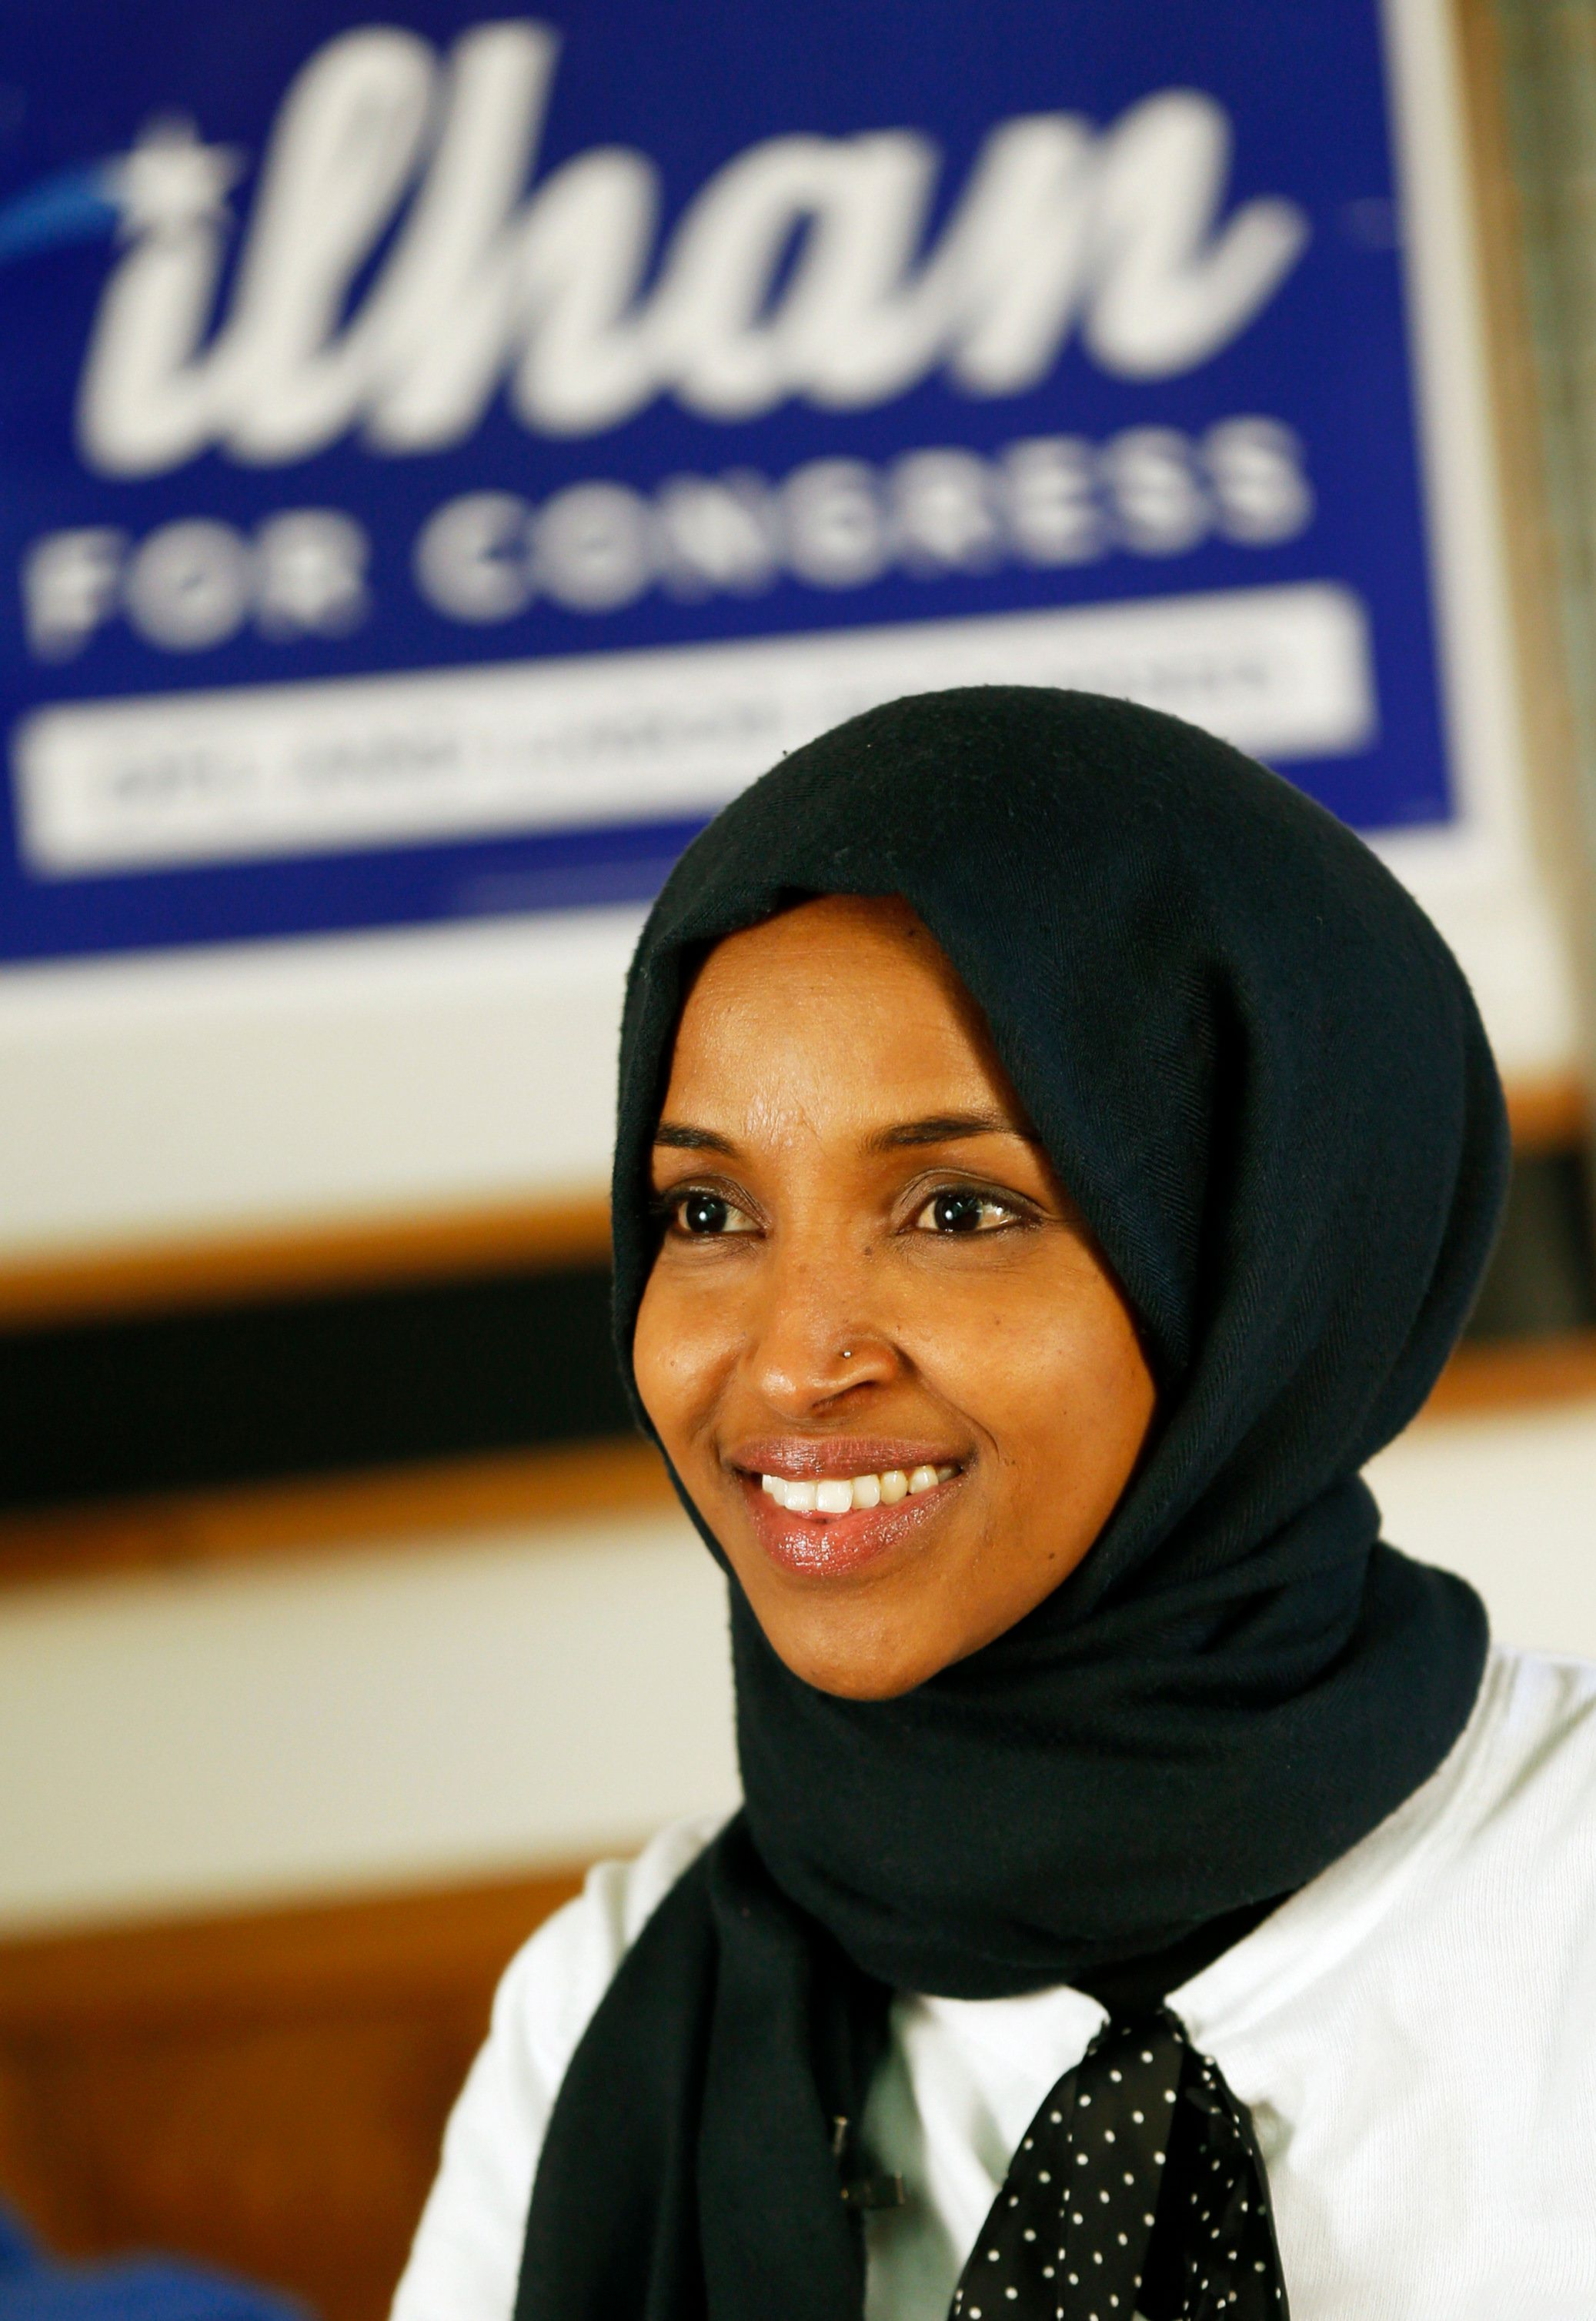 Democrat Ilhan Omar is interviewed by The Associated Press Wednesday, Nov. 7, 2018, in Minneapolis after winning Minnesota's 5th Congressional District race in Tuesday's election. She will be the first Somali American to serve in Congress and one of the first two Muslim women to serve in Congress. (AP Photo/Jim Mone)